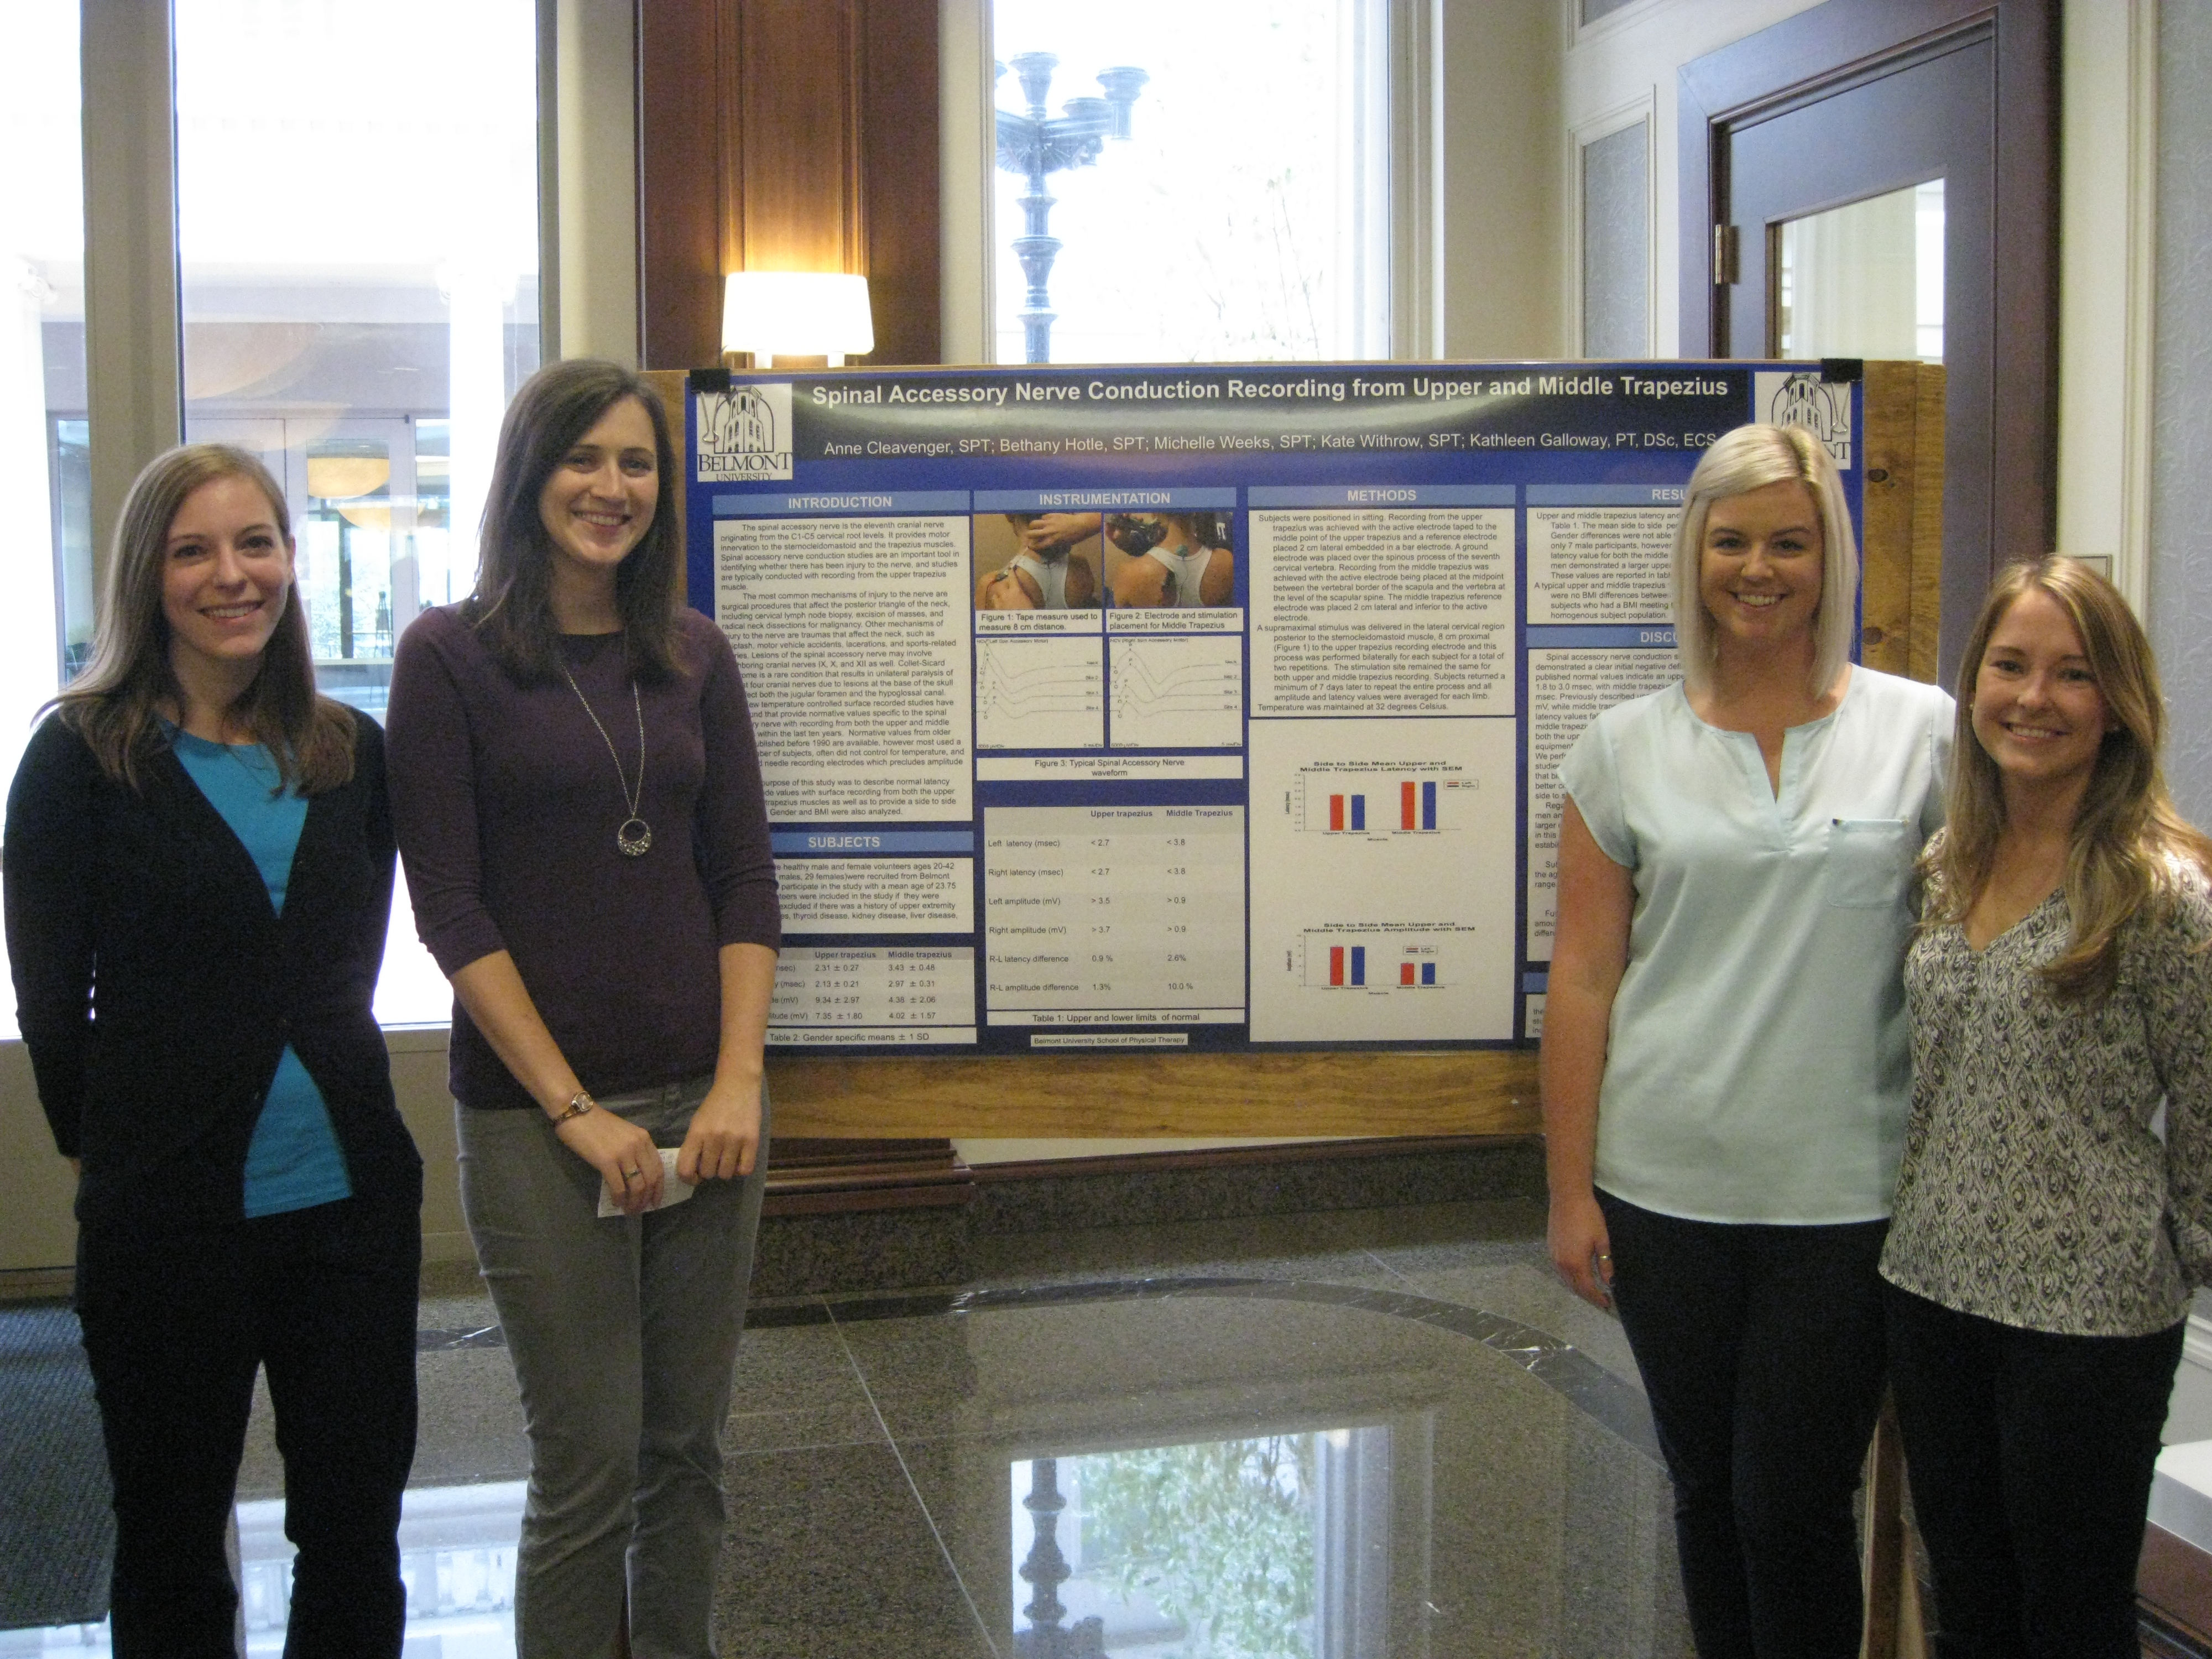 Jobs for impact physical therapy - Belmont School Of Physical Therapy Recently Held Its Annual Research Symposium And Poster Session Ten Groups Presented The Results Of Their Research